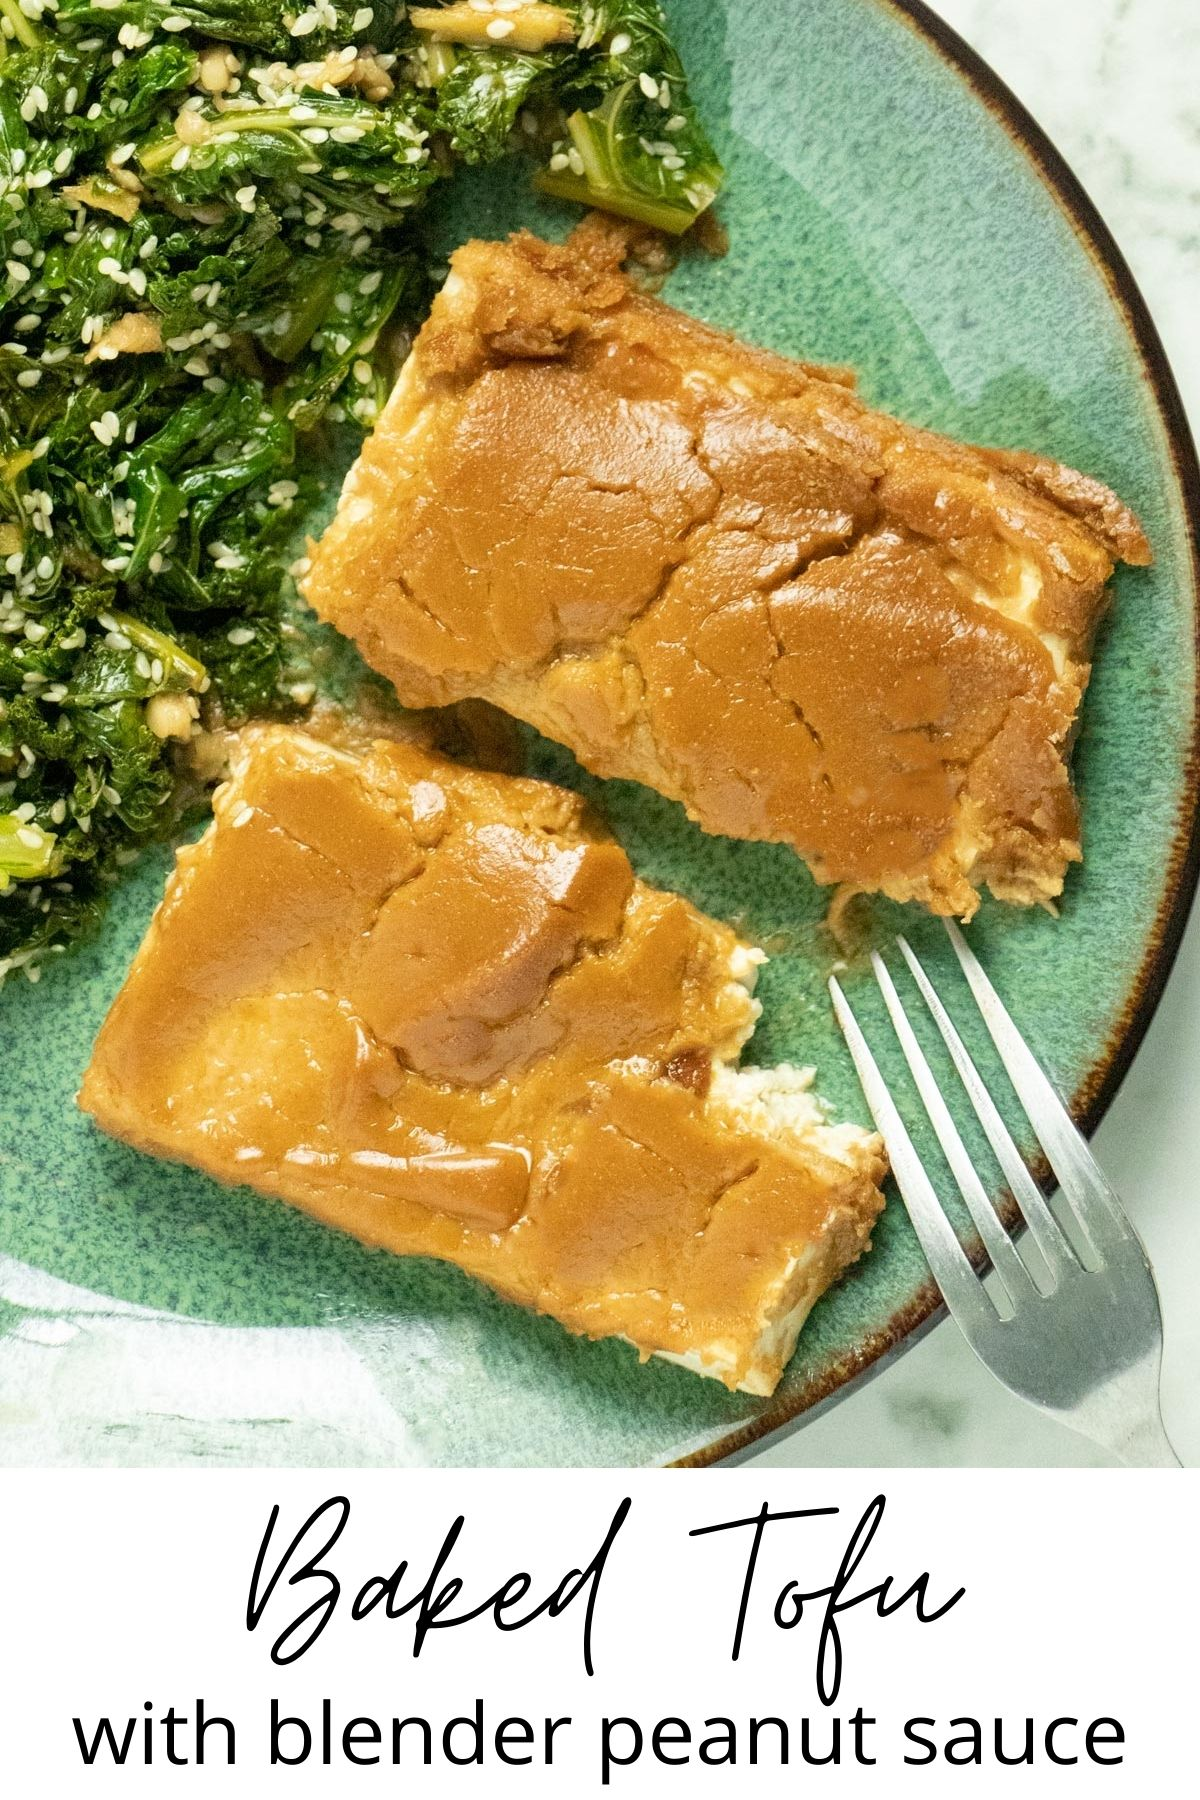 overhead photo of baked tofu with peanut sauce on a plate with ginger kale, text overlay